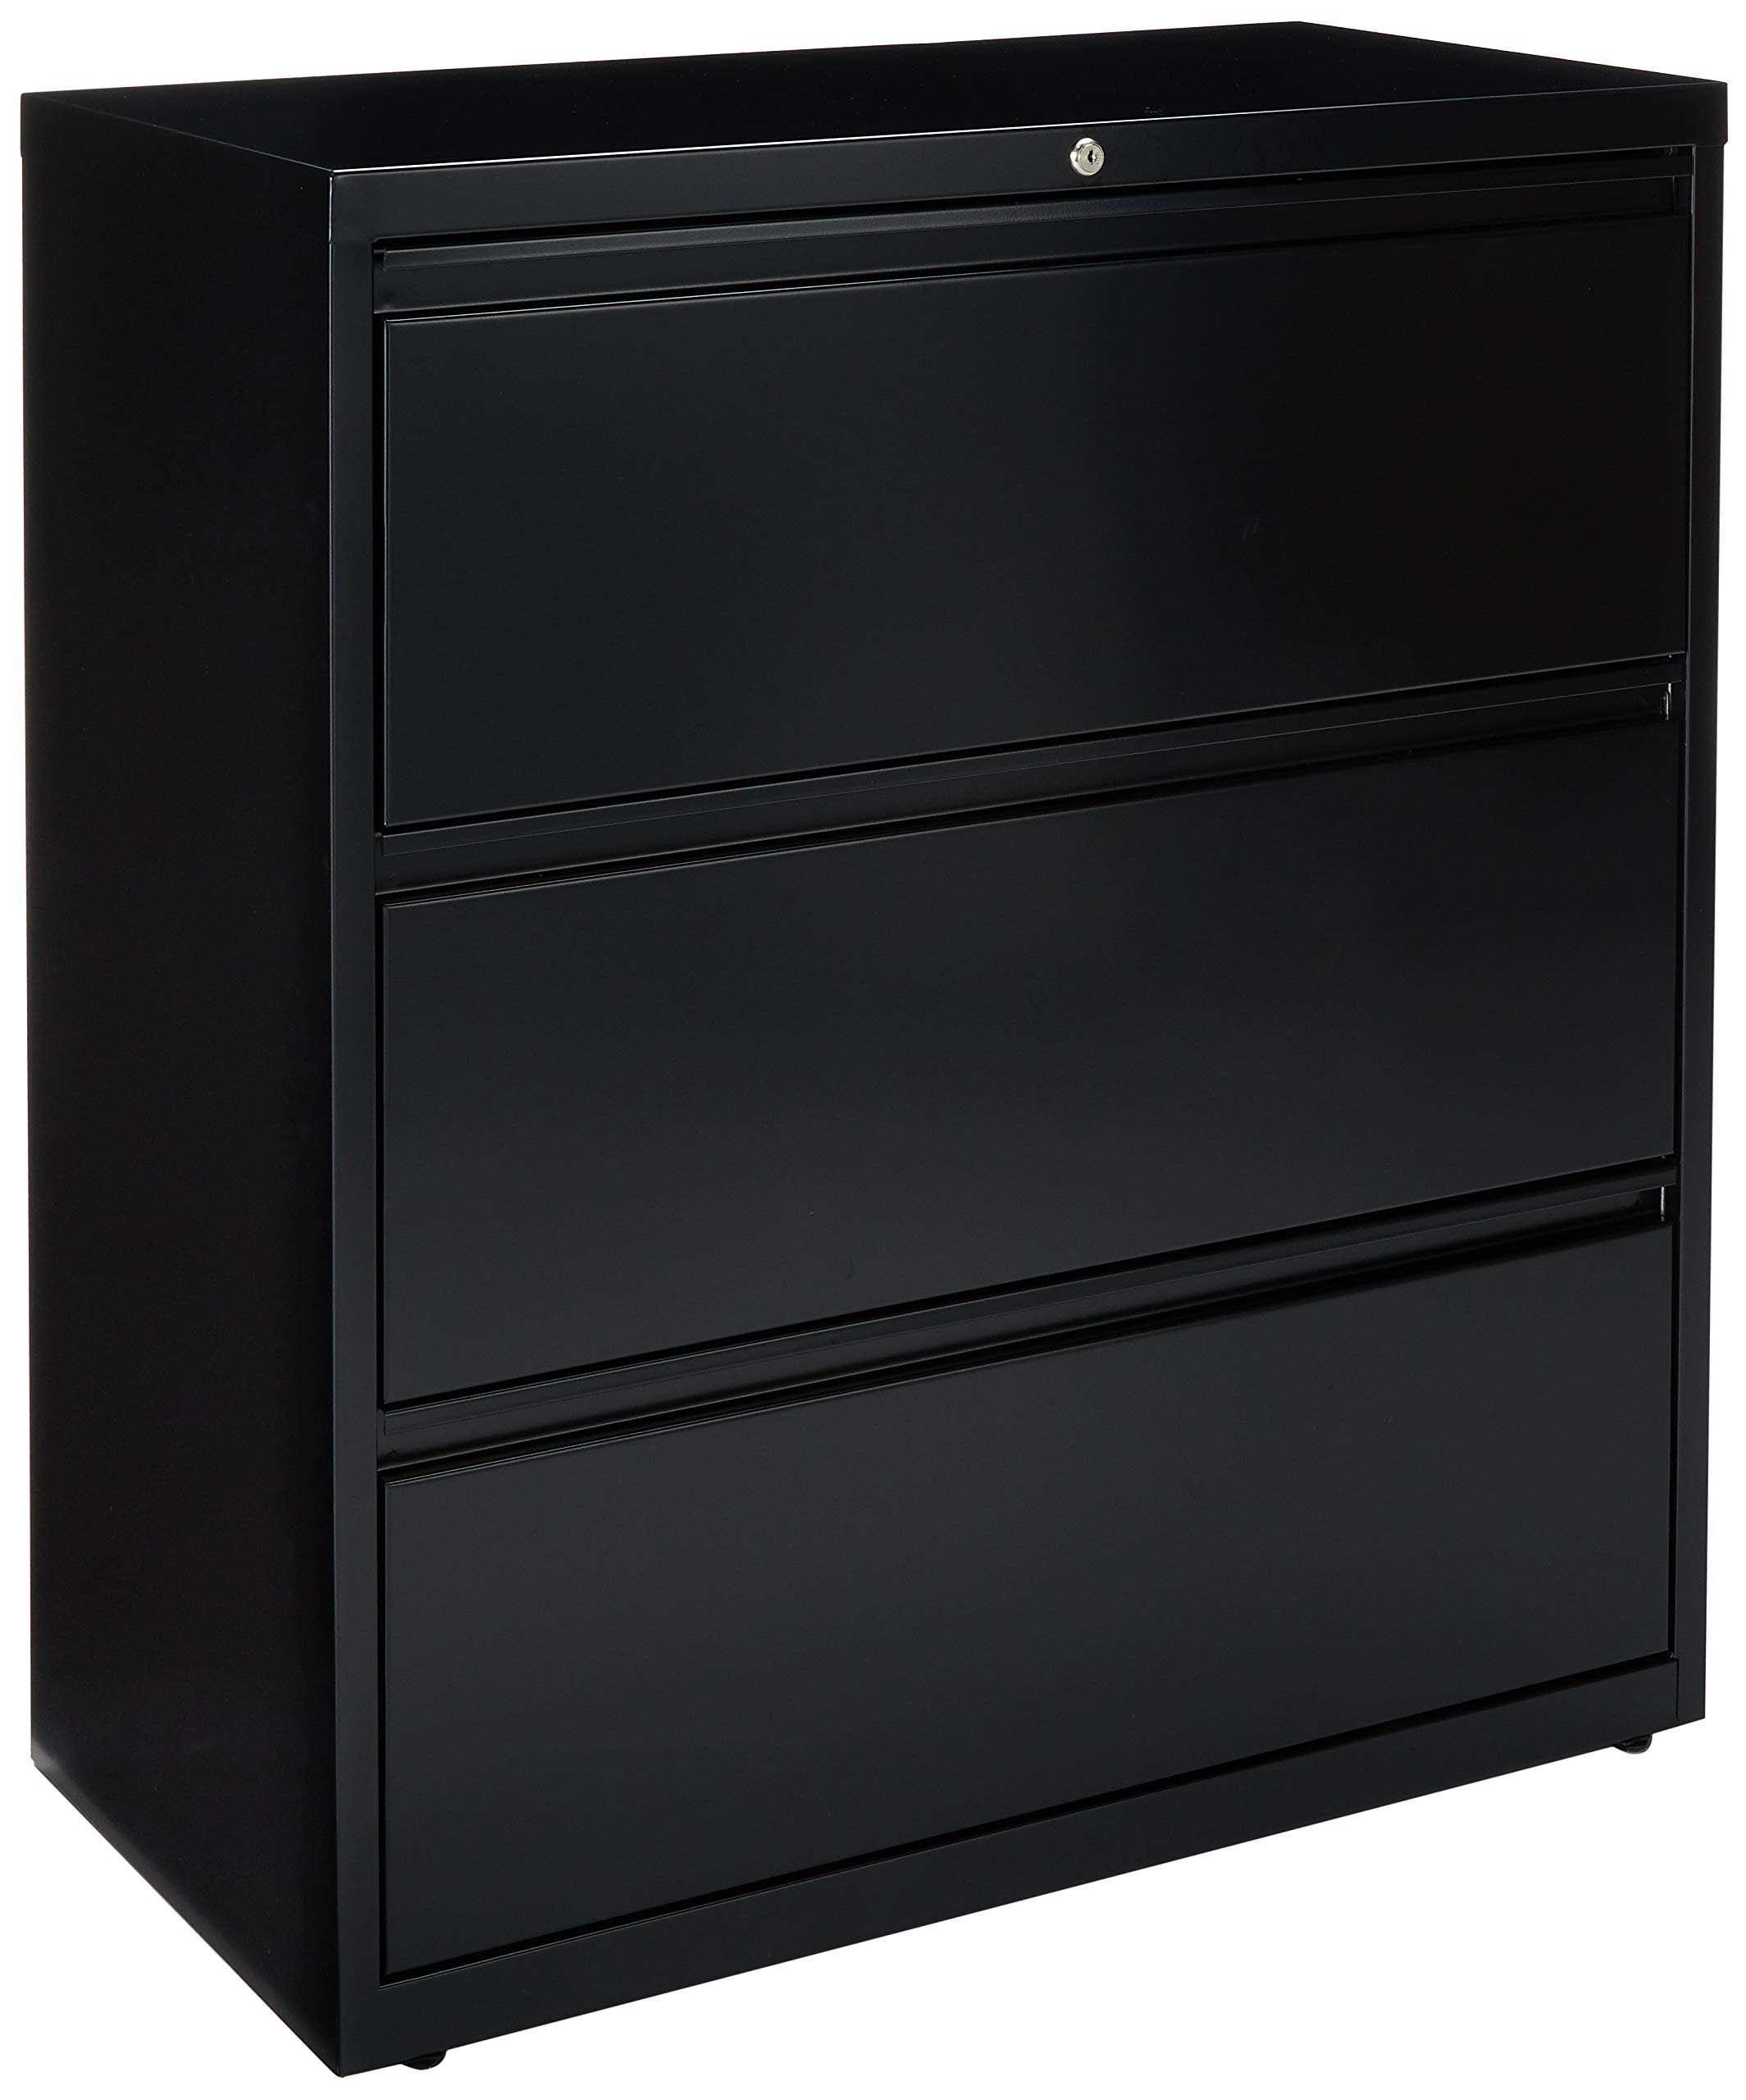 Lorell LLR88028 Lateral File Cabinet by Lorell